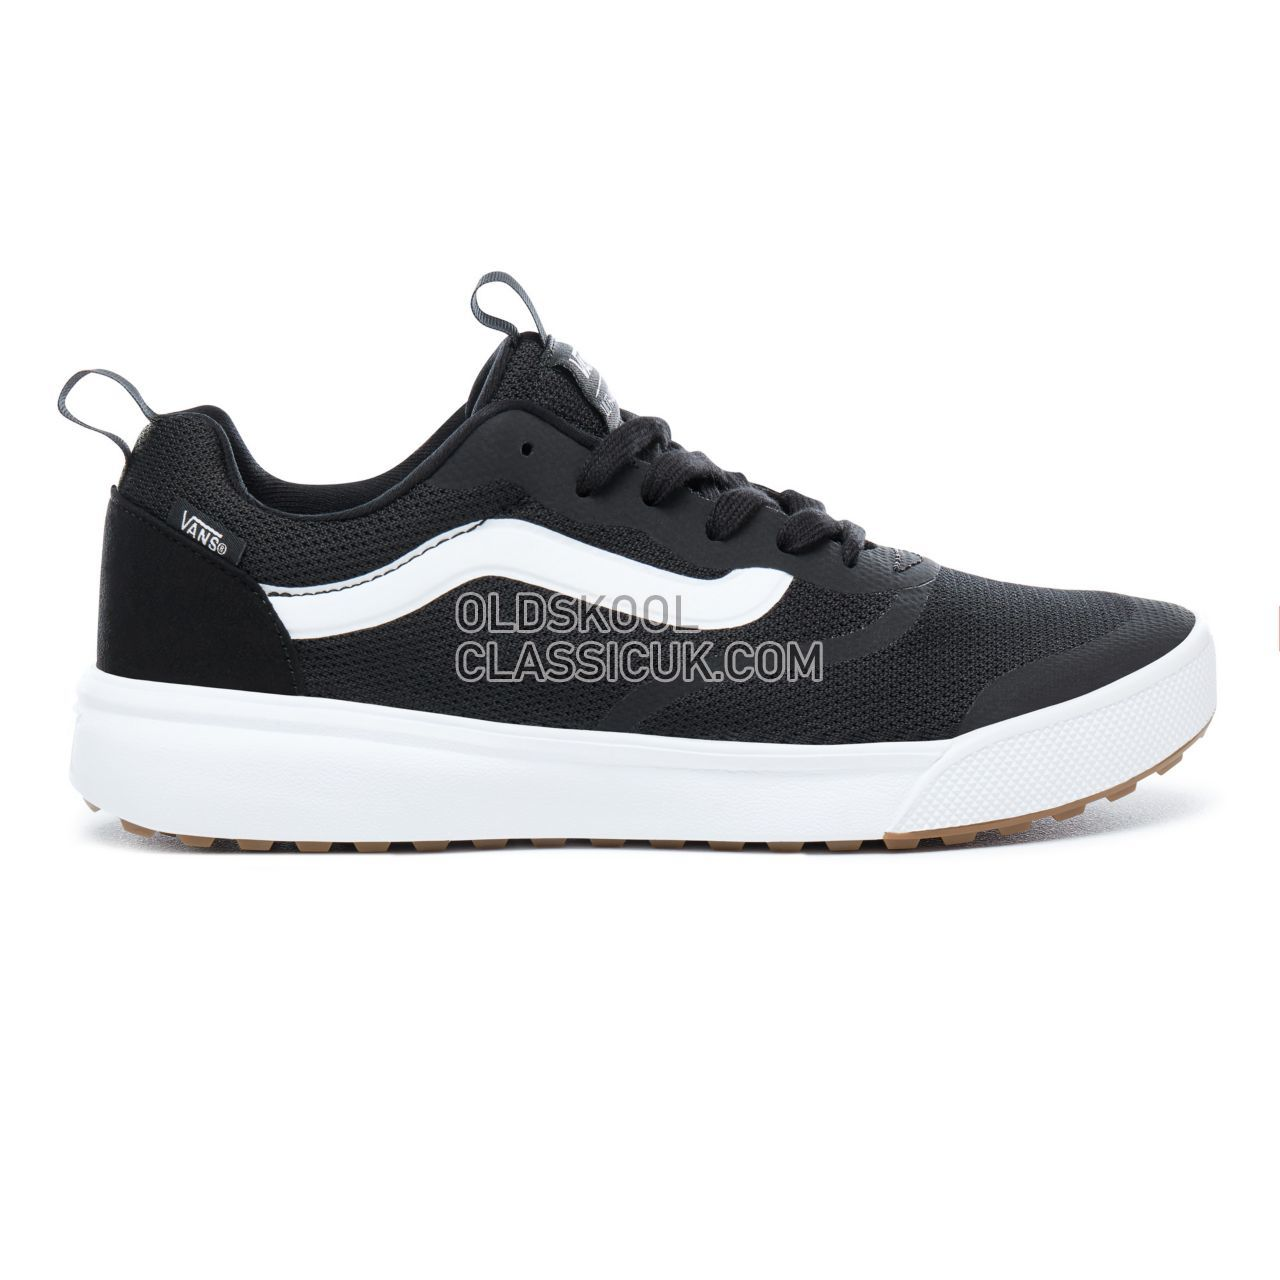 Vans Ultrarange Rapidweld Sneakers Mens Black-White VN0A3MVUY28 Shoes